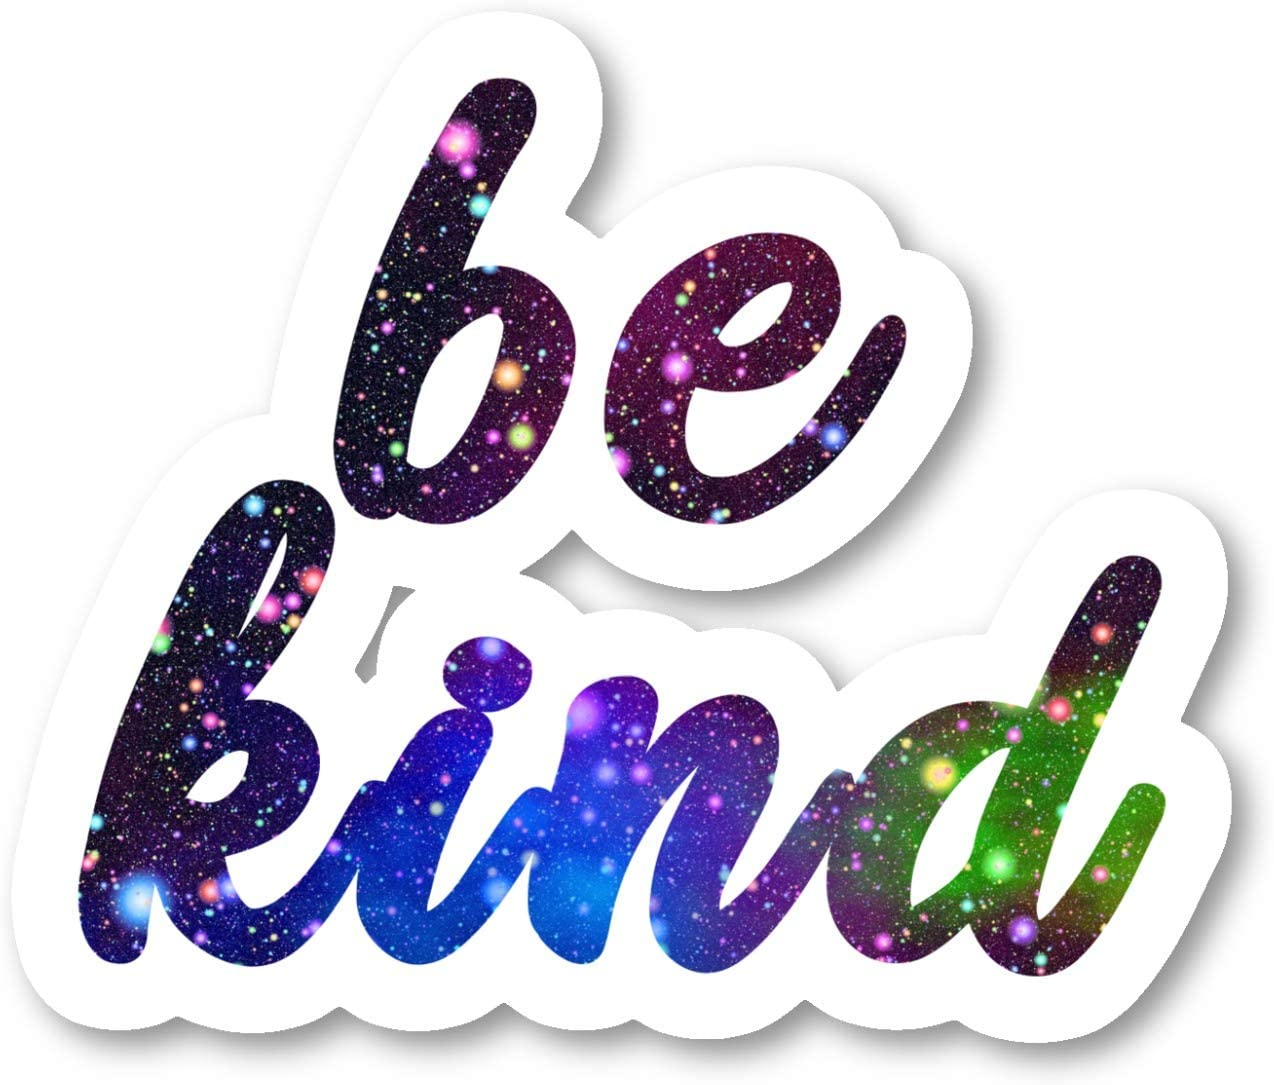 Be Kind Sticker Inspirational Quotes Galaxy Stickers - Laptop Stickers - 2.5 Inches Vinyl Decal - Laptop, Phone, Tablet Vinyl Decal Sticker S211122